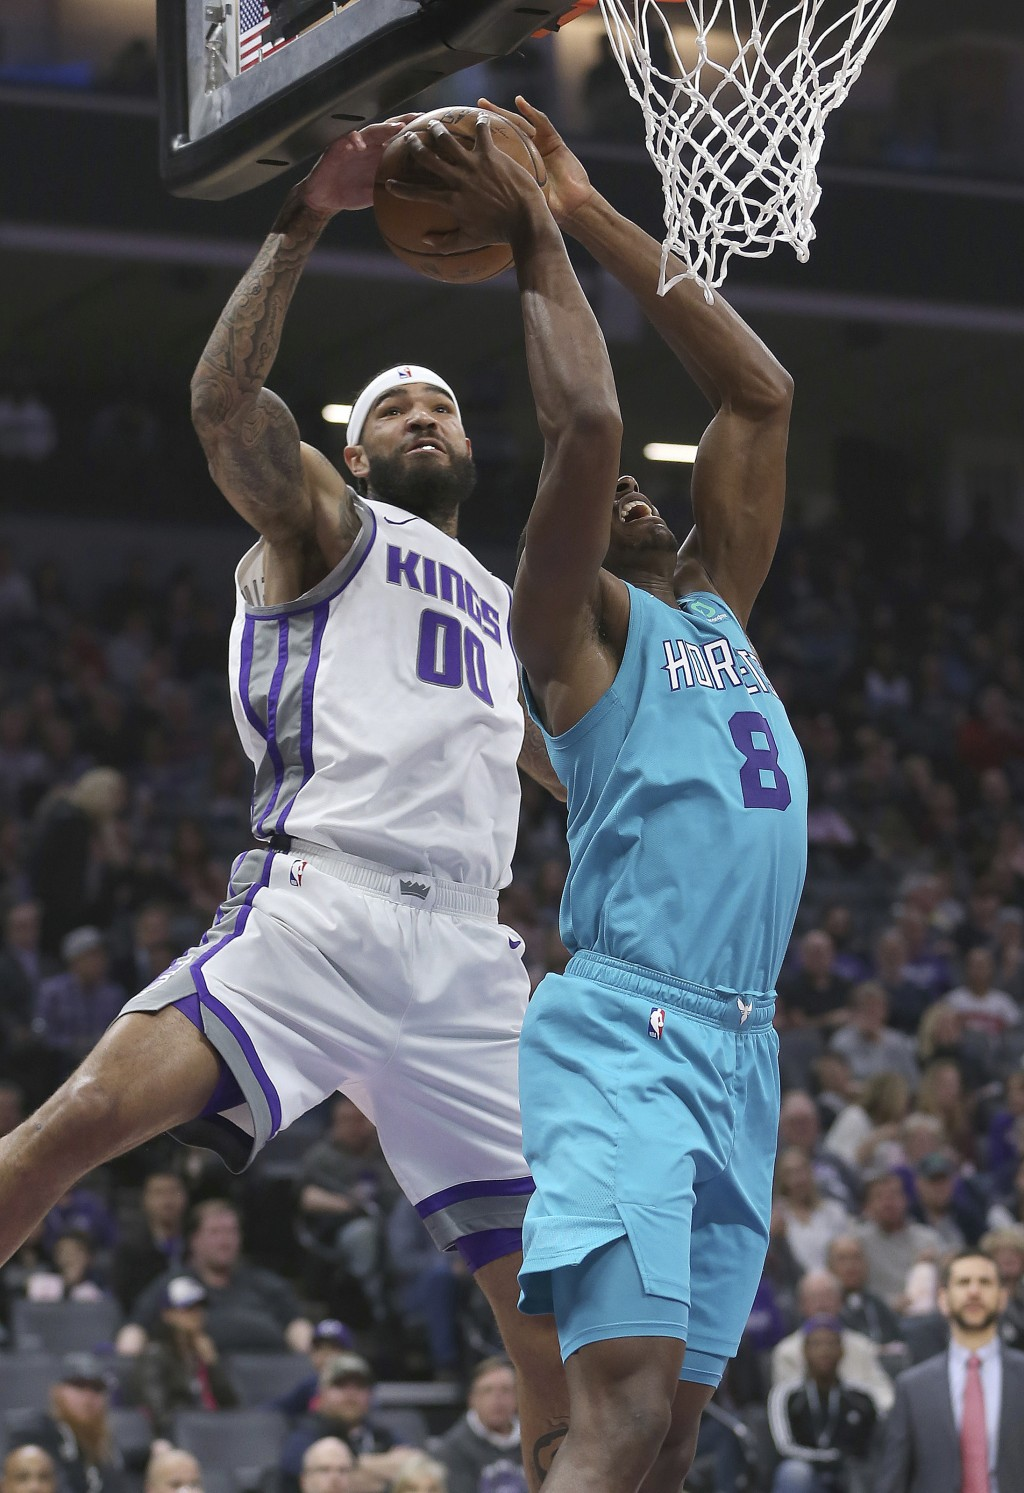 Charlotte Hornets center Bismack Biyombo, right, has his shot blocked by Sacramento Kings center Willie Cauley-Stein during the first quarter of an NB